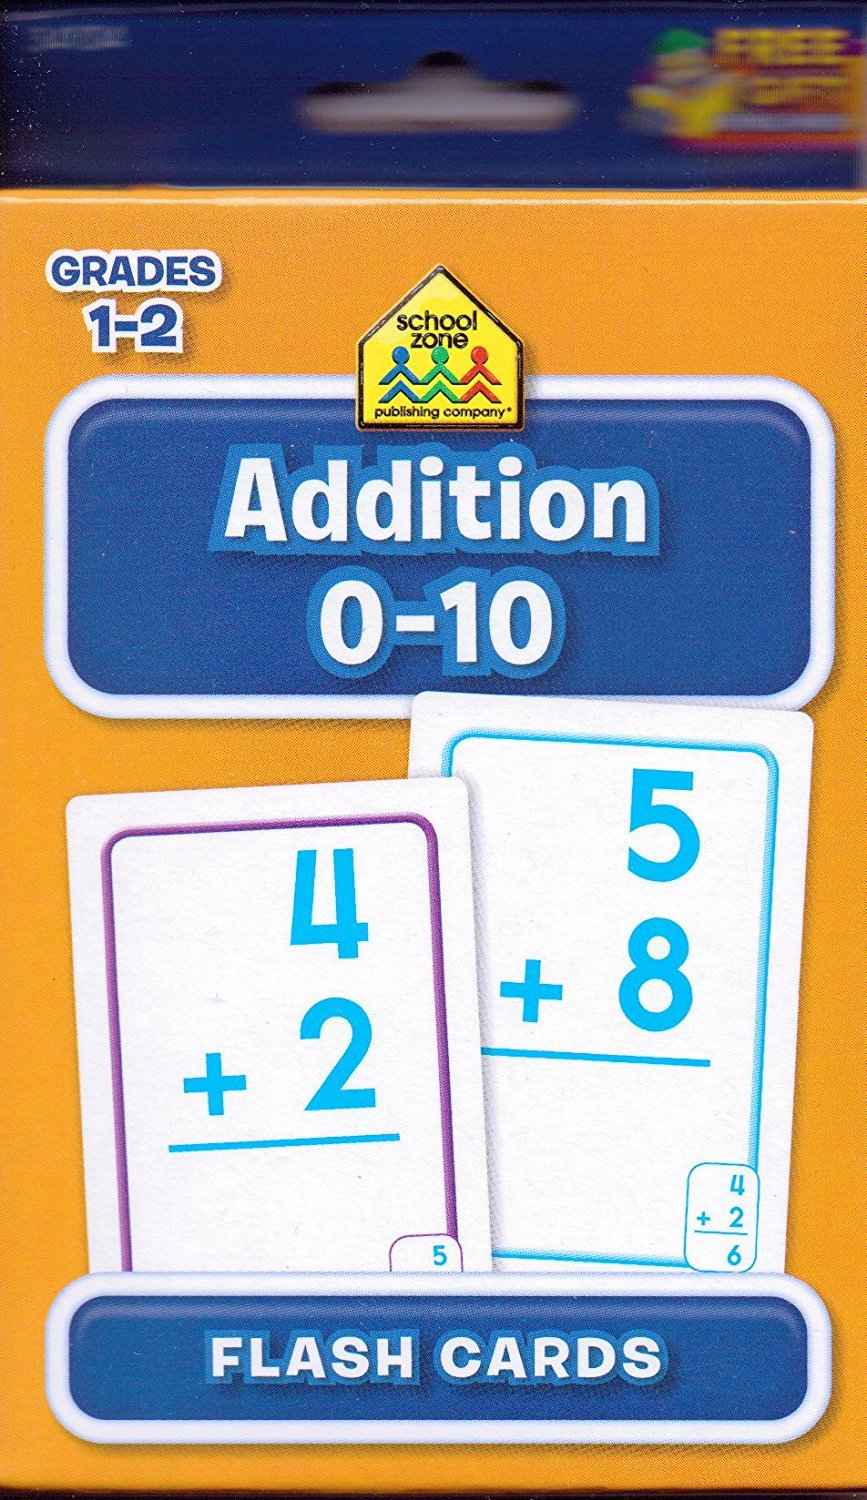 Flash Cards for Addition Vision Street